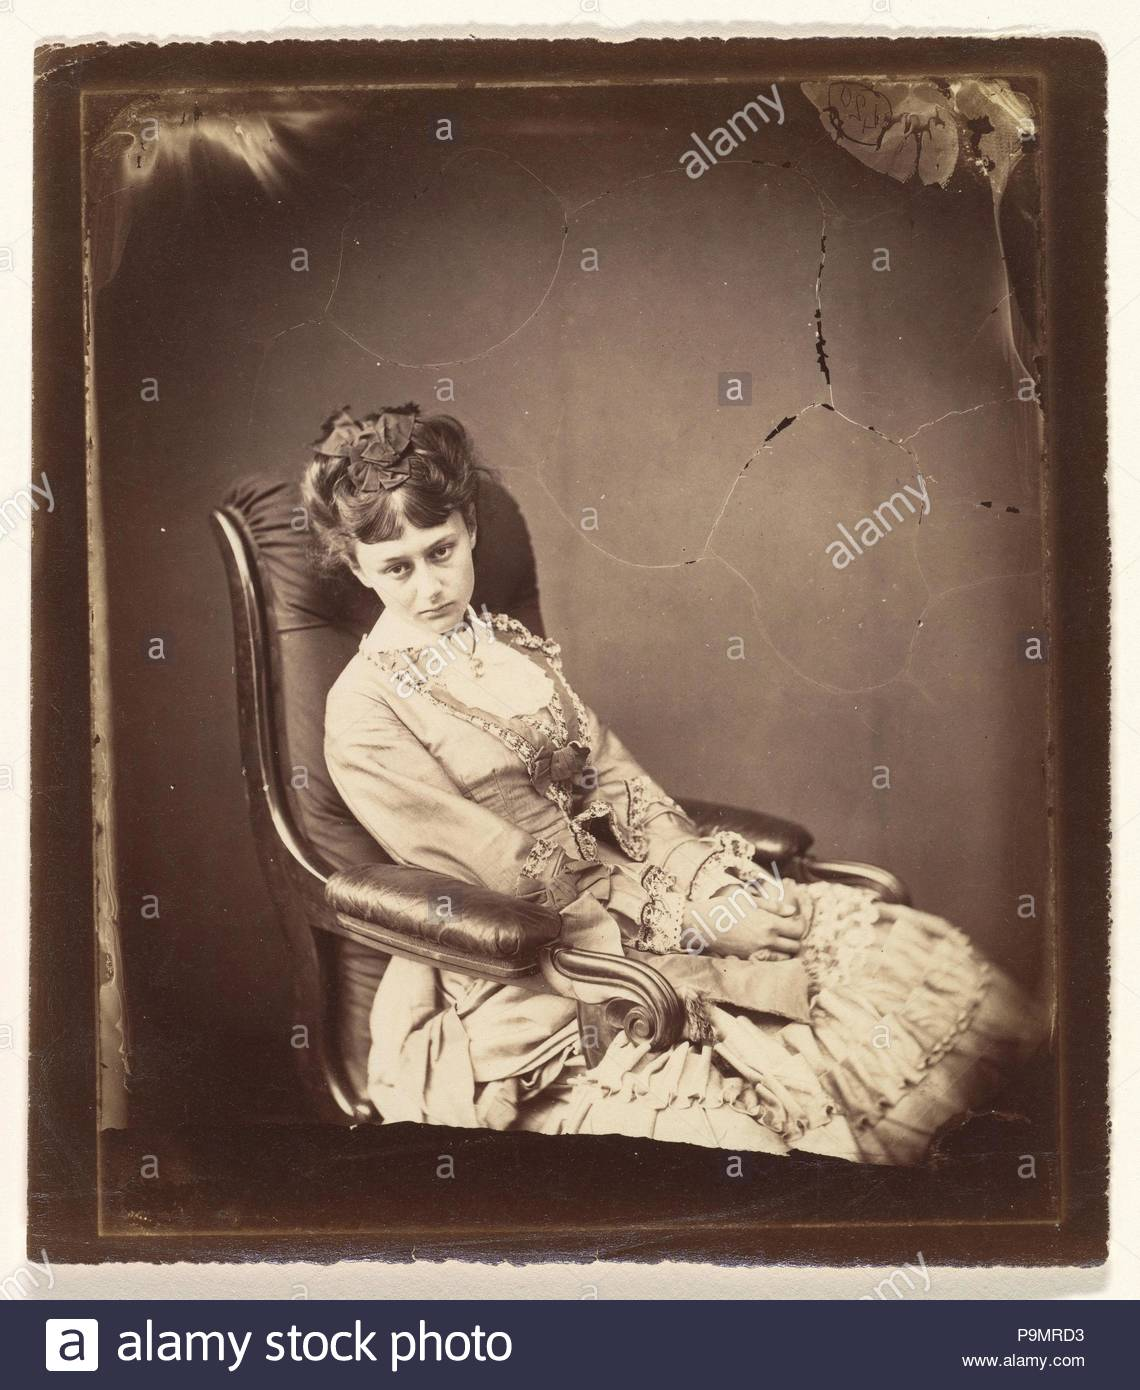 The Last Sitting, June 25, 1870, Albumen silver print from glass negative, Sheet: 6 1/4 × 5 9/16 in. (15.9 × 14.1 cm), Photographs, Lewis Carroll (British, Daresbury, Cheshire 1832–1898 Guildford). - Stock Image